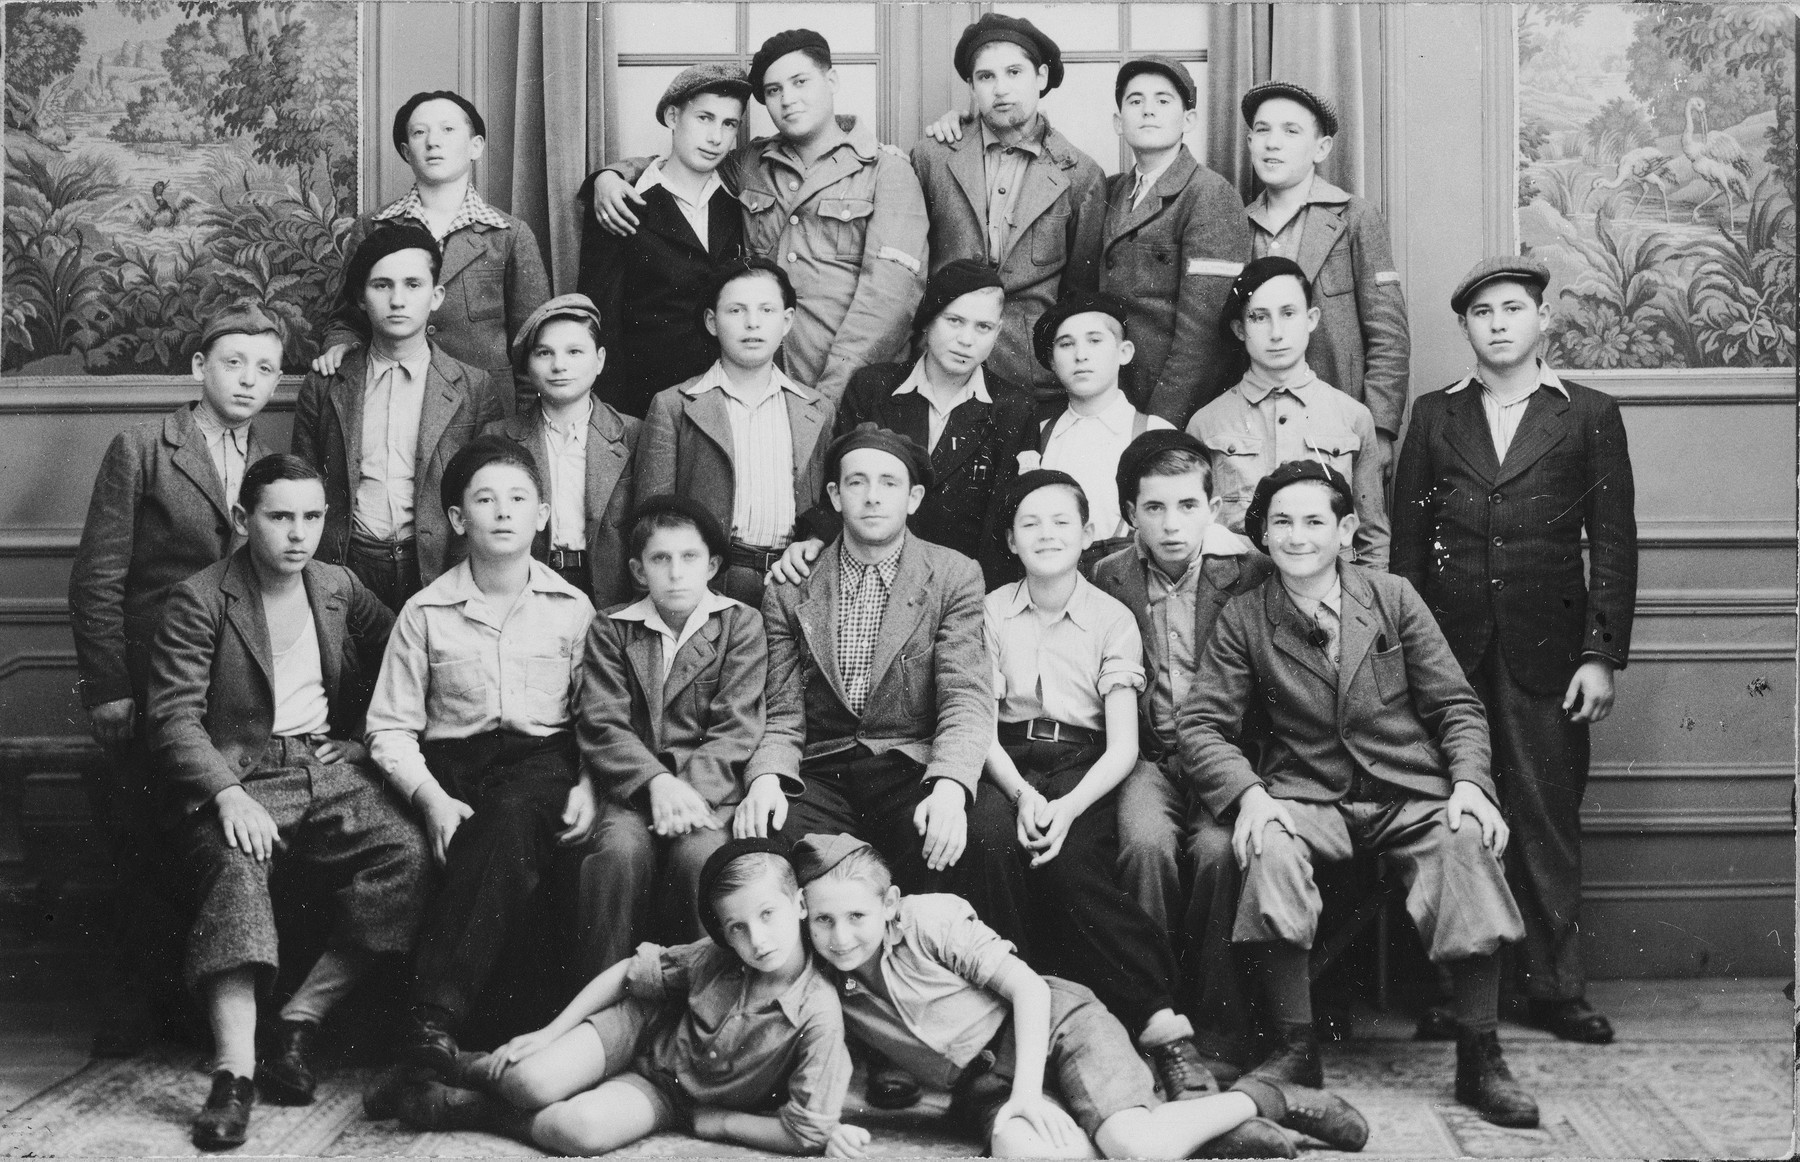 Group portrait of Jewish DP youth who numbered among the Buchenwald children, at an OSE (Oeuvre de Secours aux Enfants) children's home in France [either in Ambloy or Taverny].  The man in the middle is Leo Margolis, a German Jew who was in Buchenwald for approximately six years and helped care for the children.  To his left is Natan Swarc from Piotrkow and on the far right of that row is Josef Szwarcberg.  Lying in front are Izio Rosenman and Jacques (Jakob) Finkelsztajn.